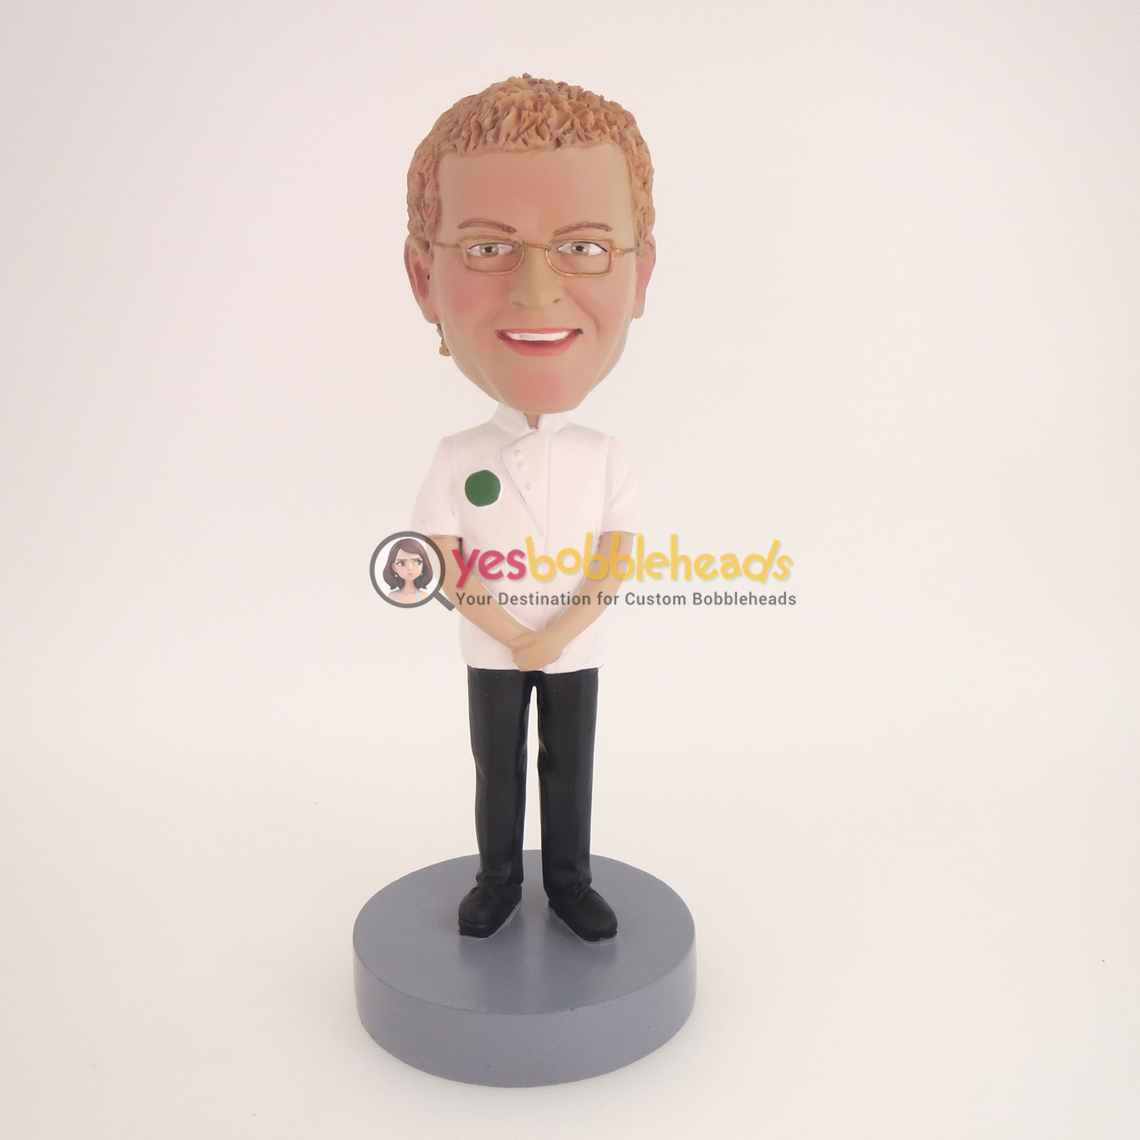 Picture of Custom Bobblehead Doll: Two Hands Before White Suit Man